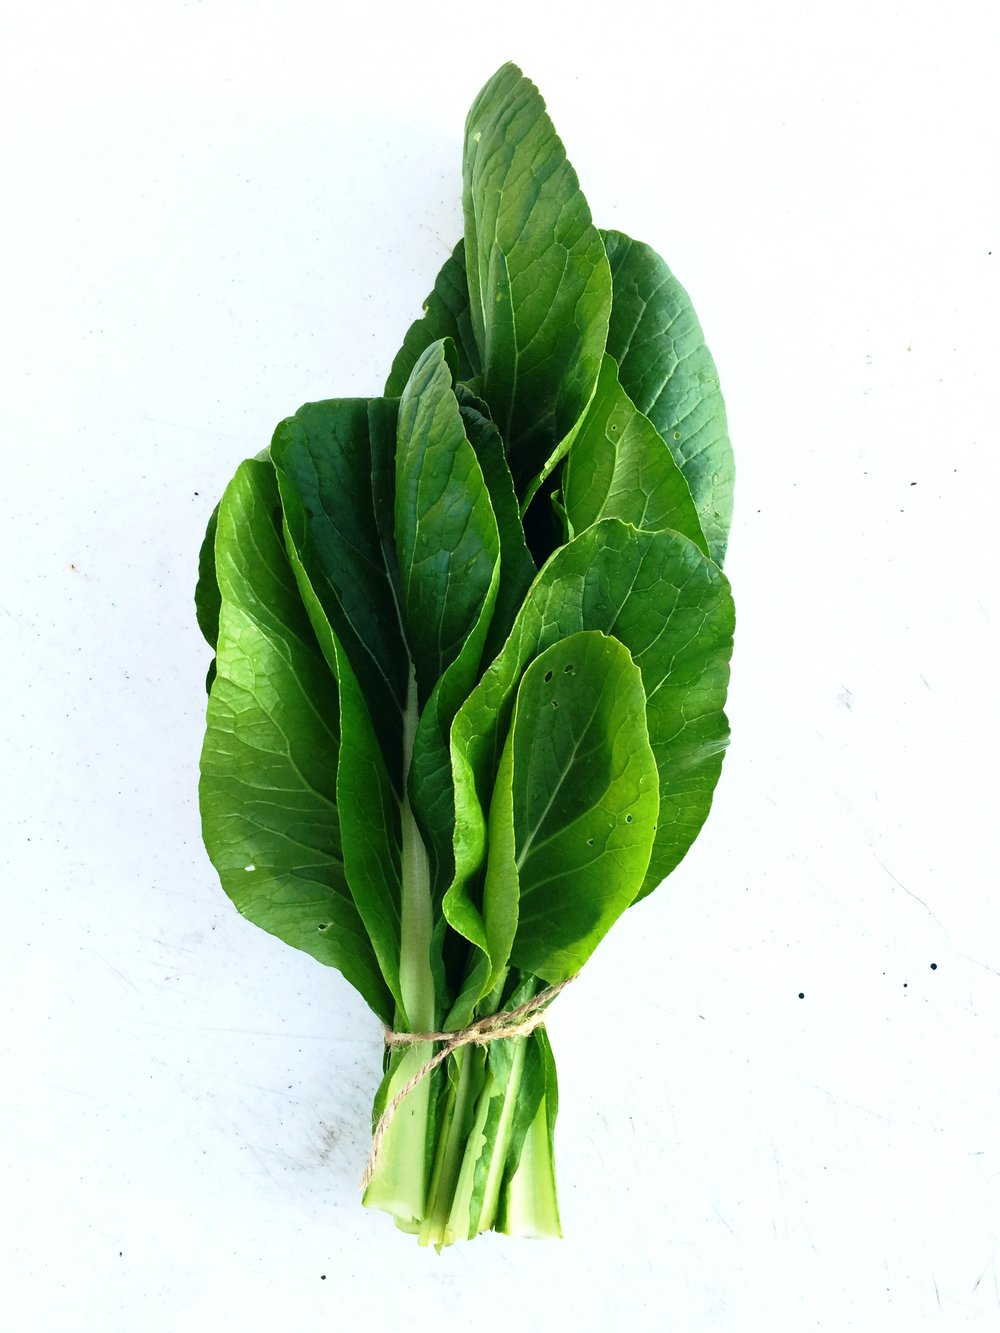 TENDERGREEN MUSTARD SPINACH